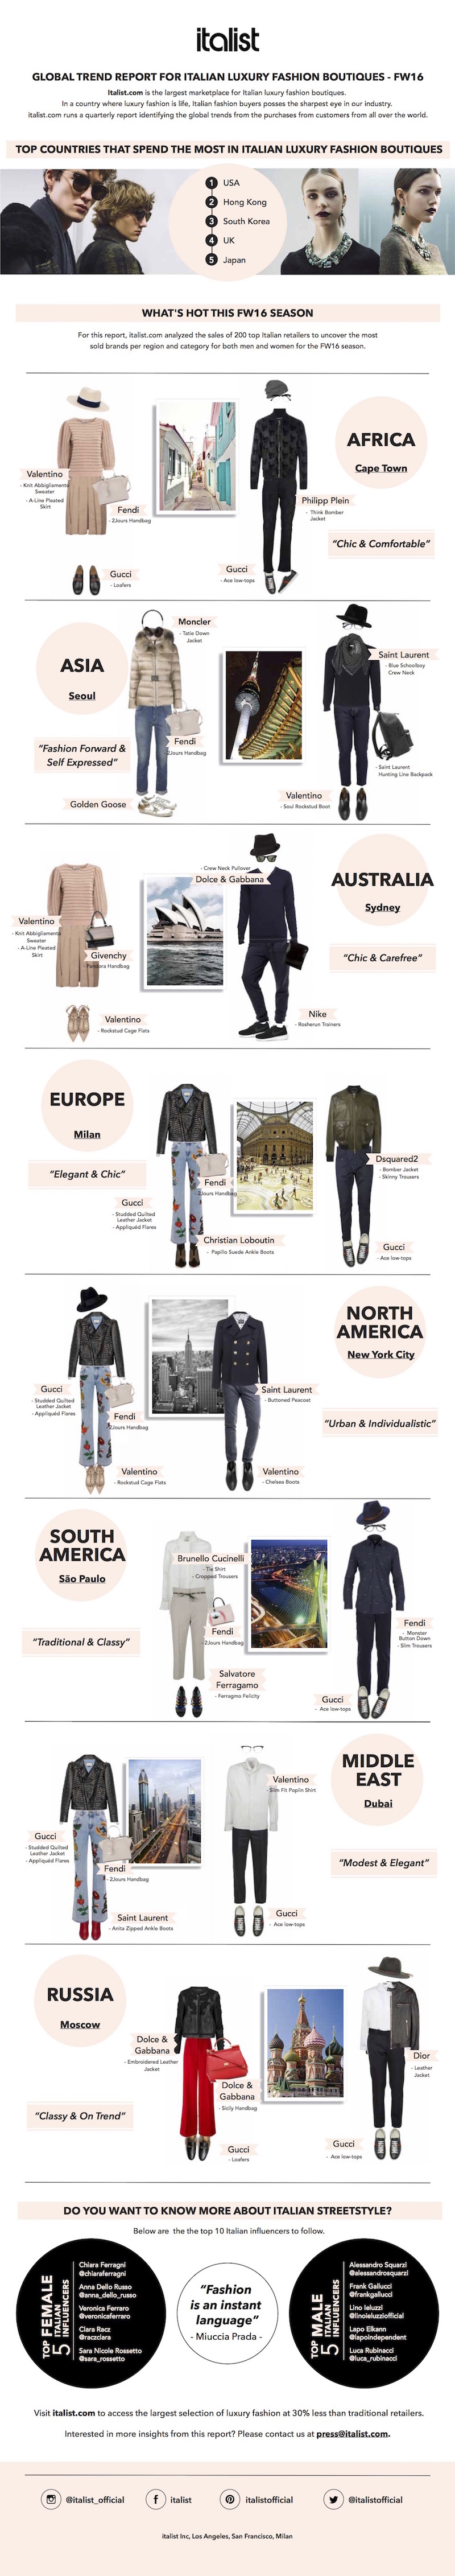 infographic-global-trend-report-italian-luxury-fashion-boutiques-italist